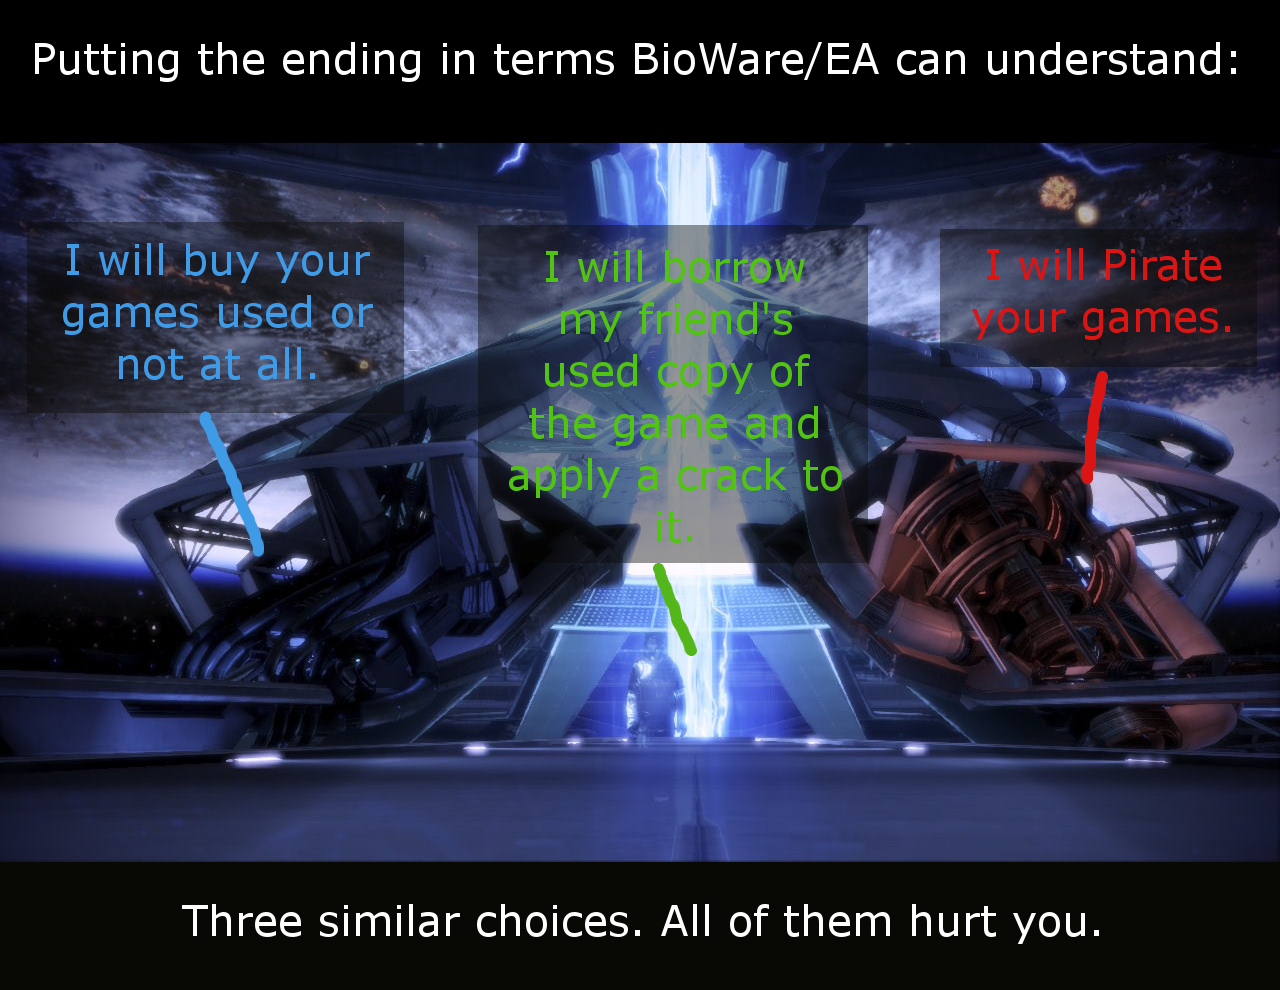 ea ending translator mass effect 3 endings reception know your meme rh knowyourmeme com Mass Effect Armor Mass Effect Movie